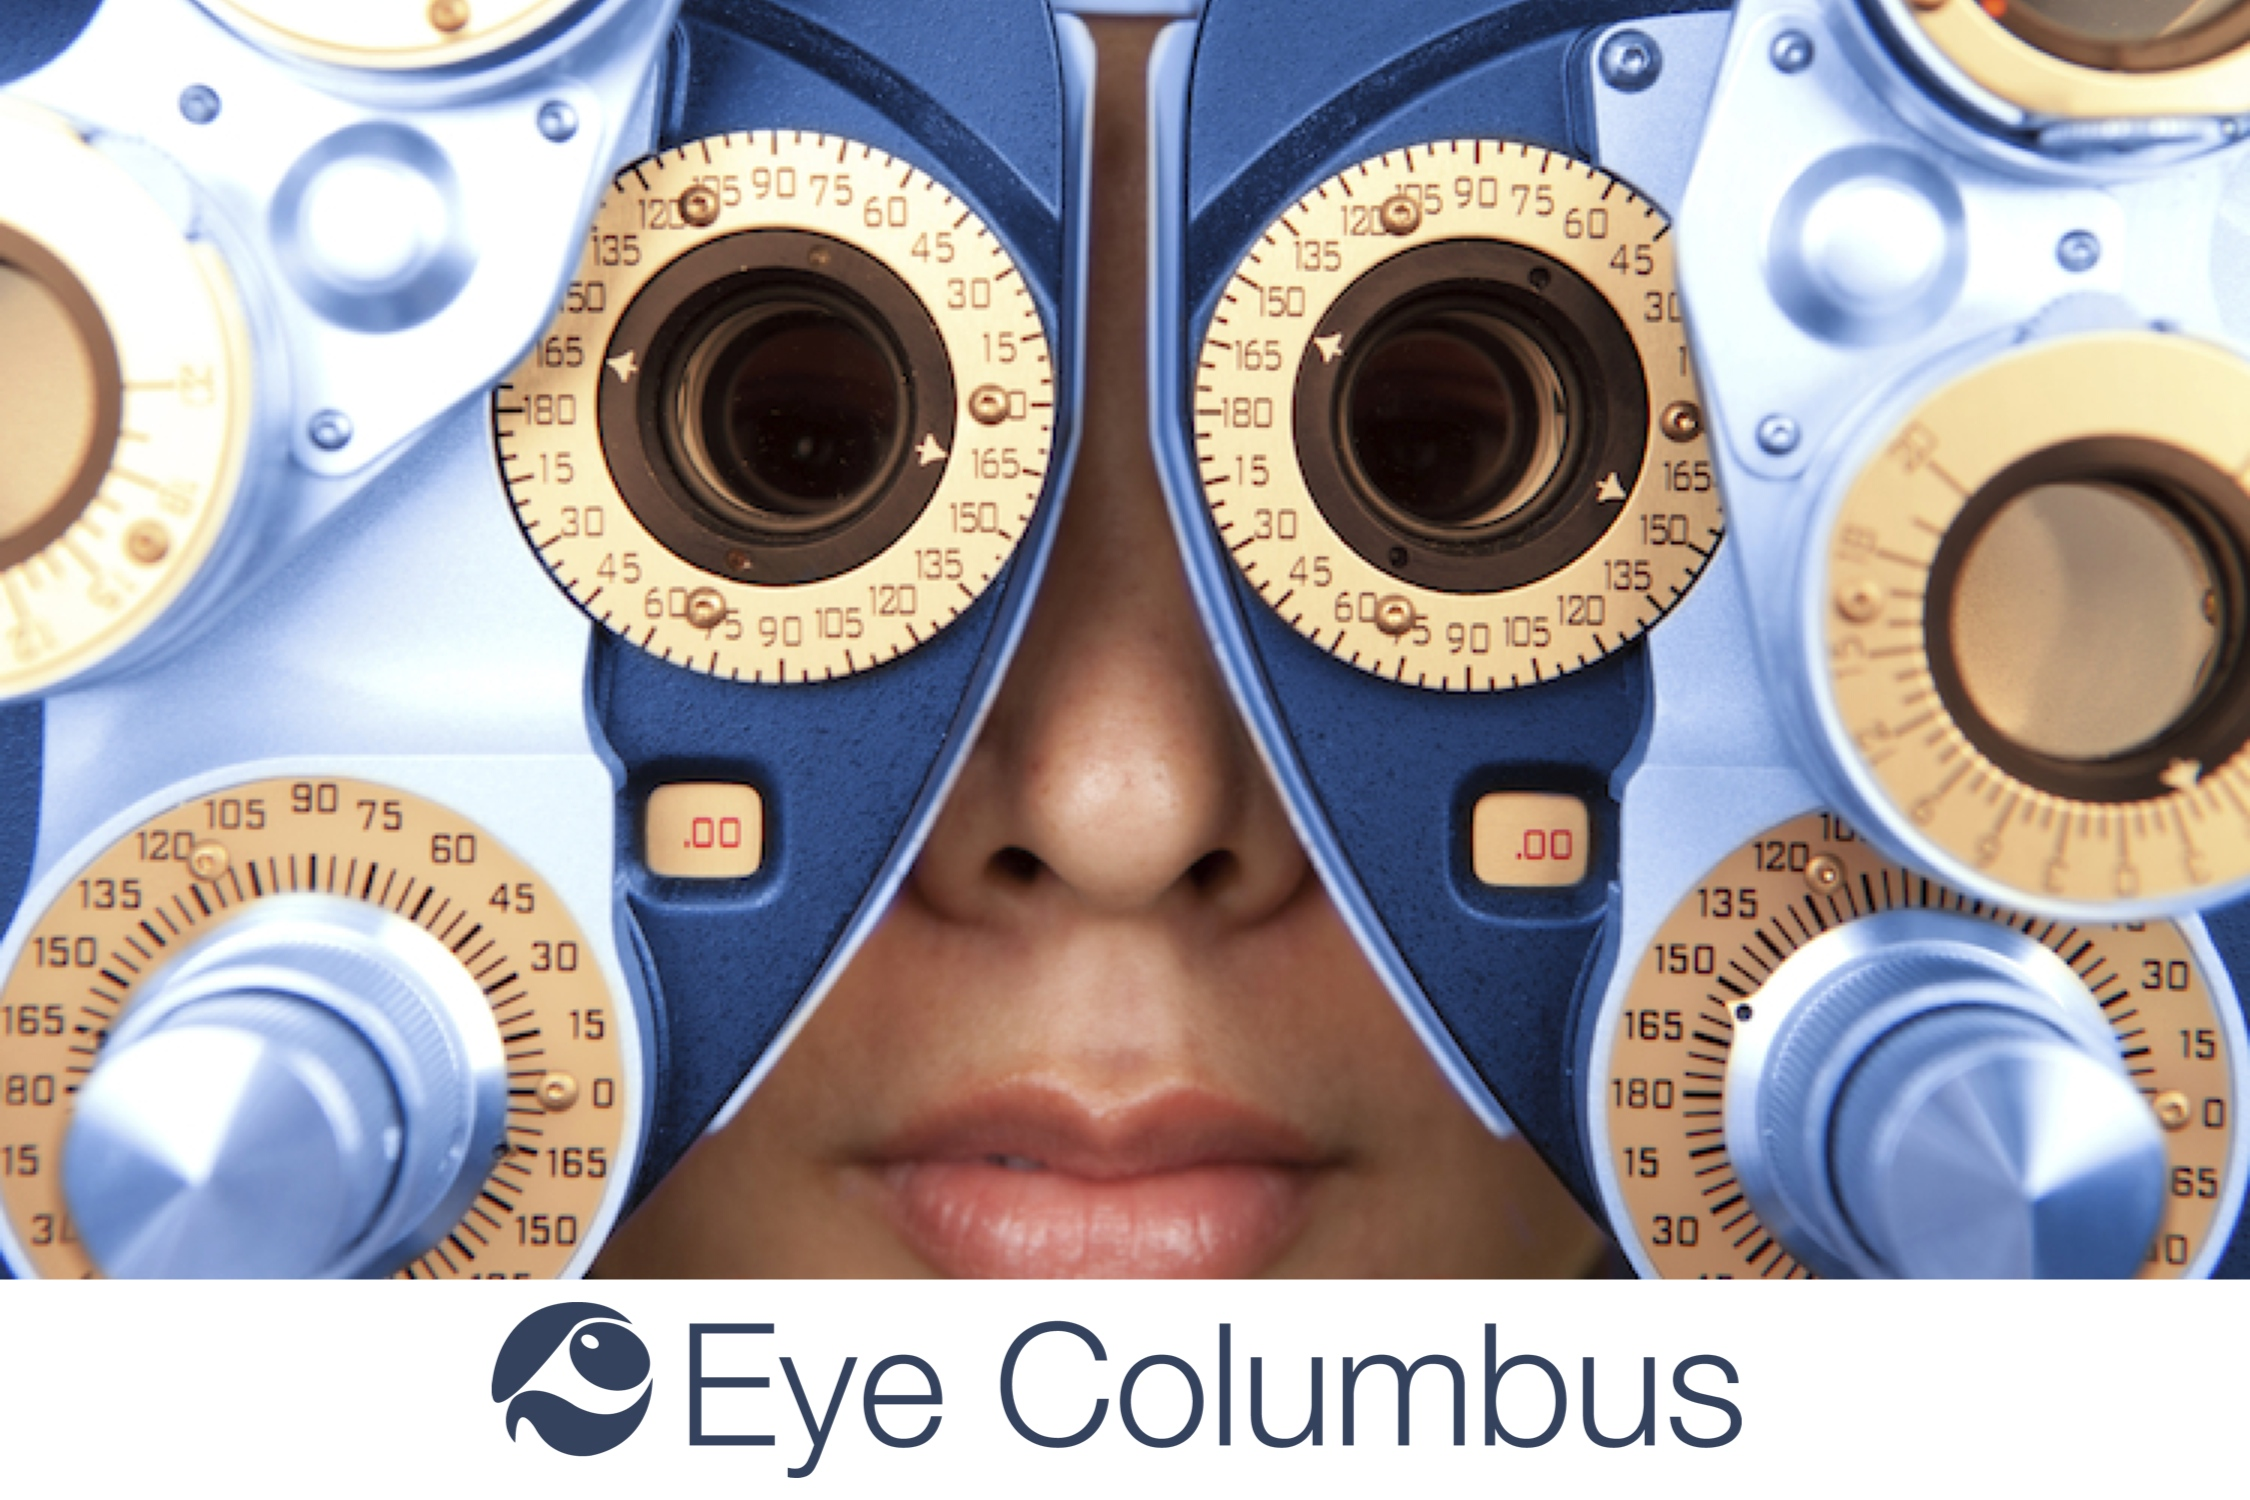 eye-columbus-brand-blue.jpg